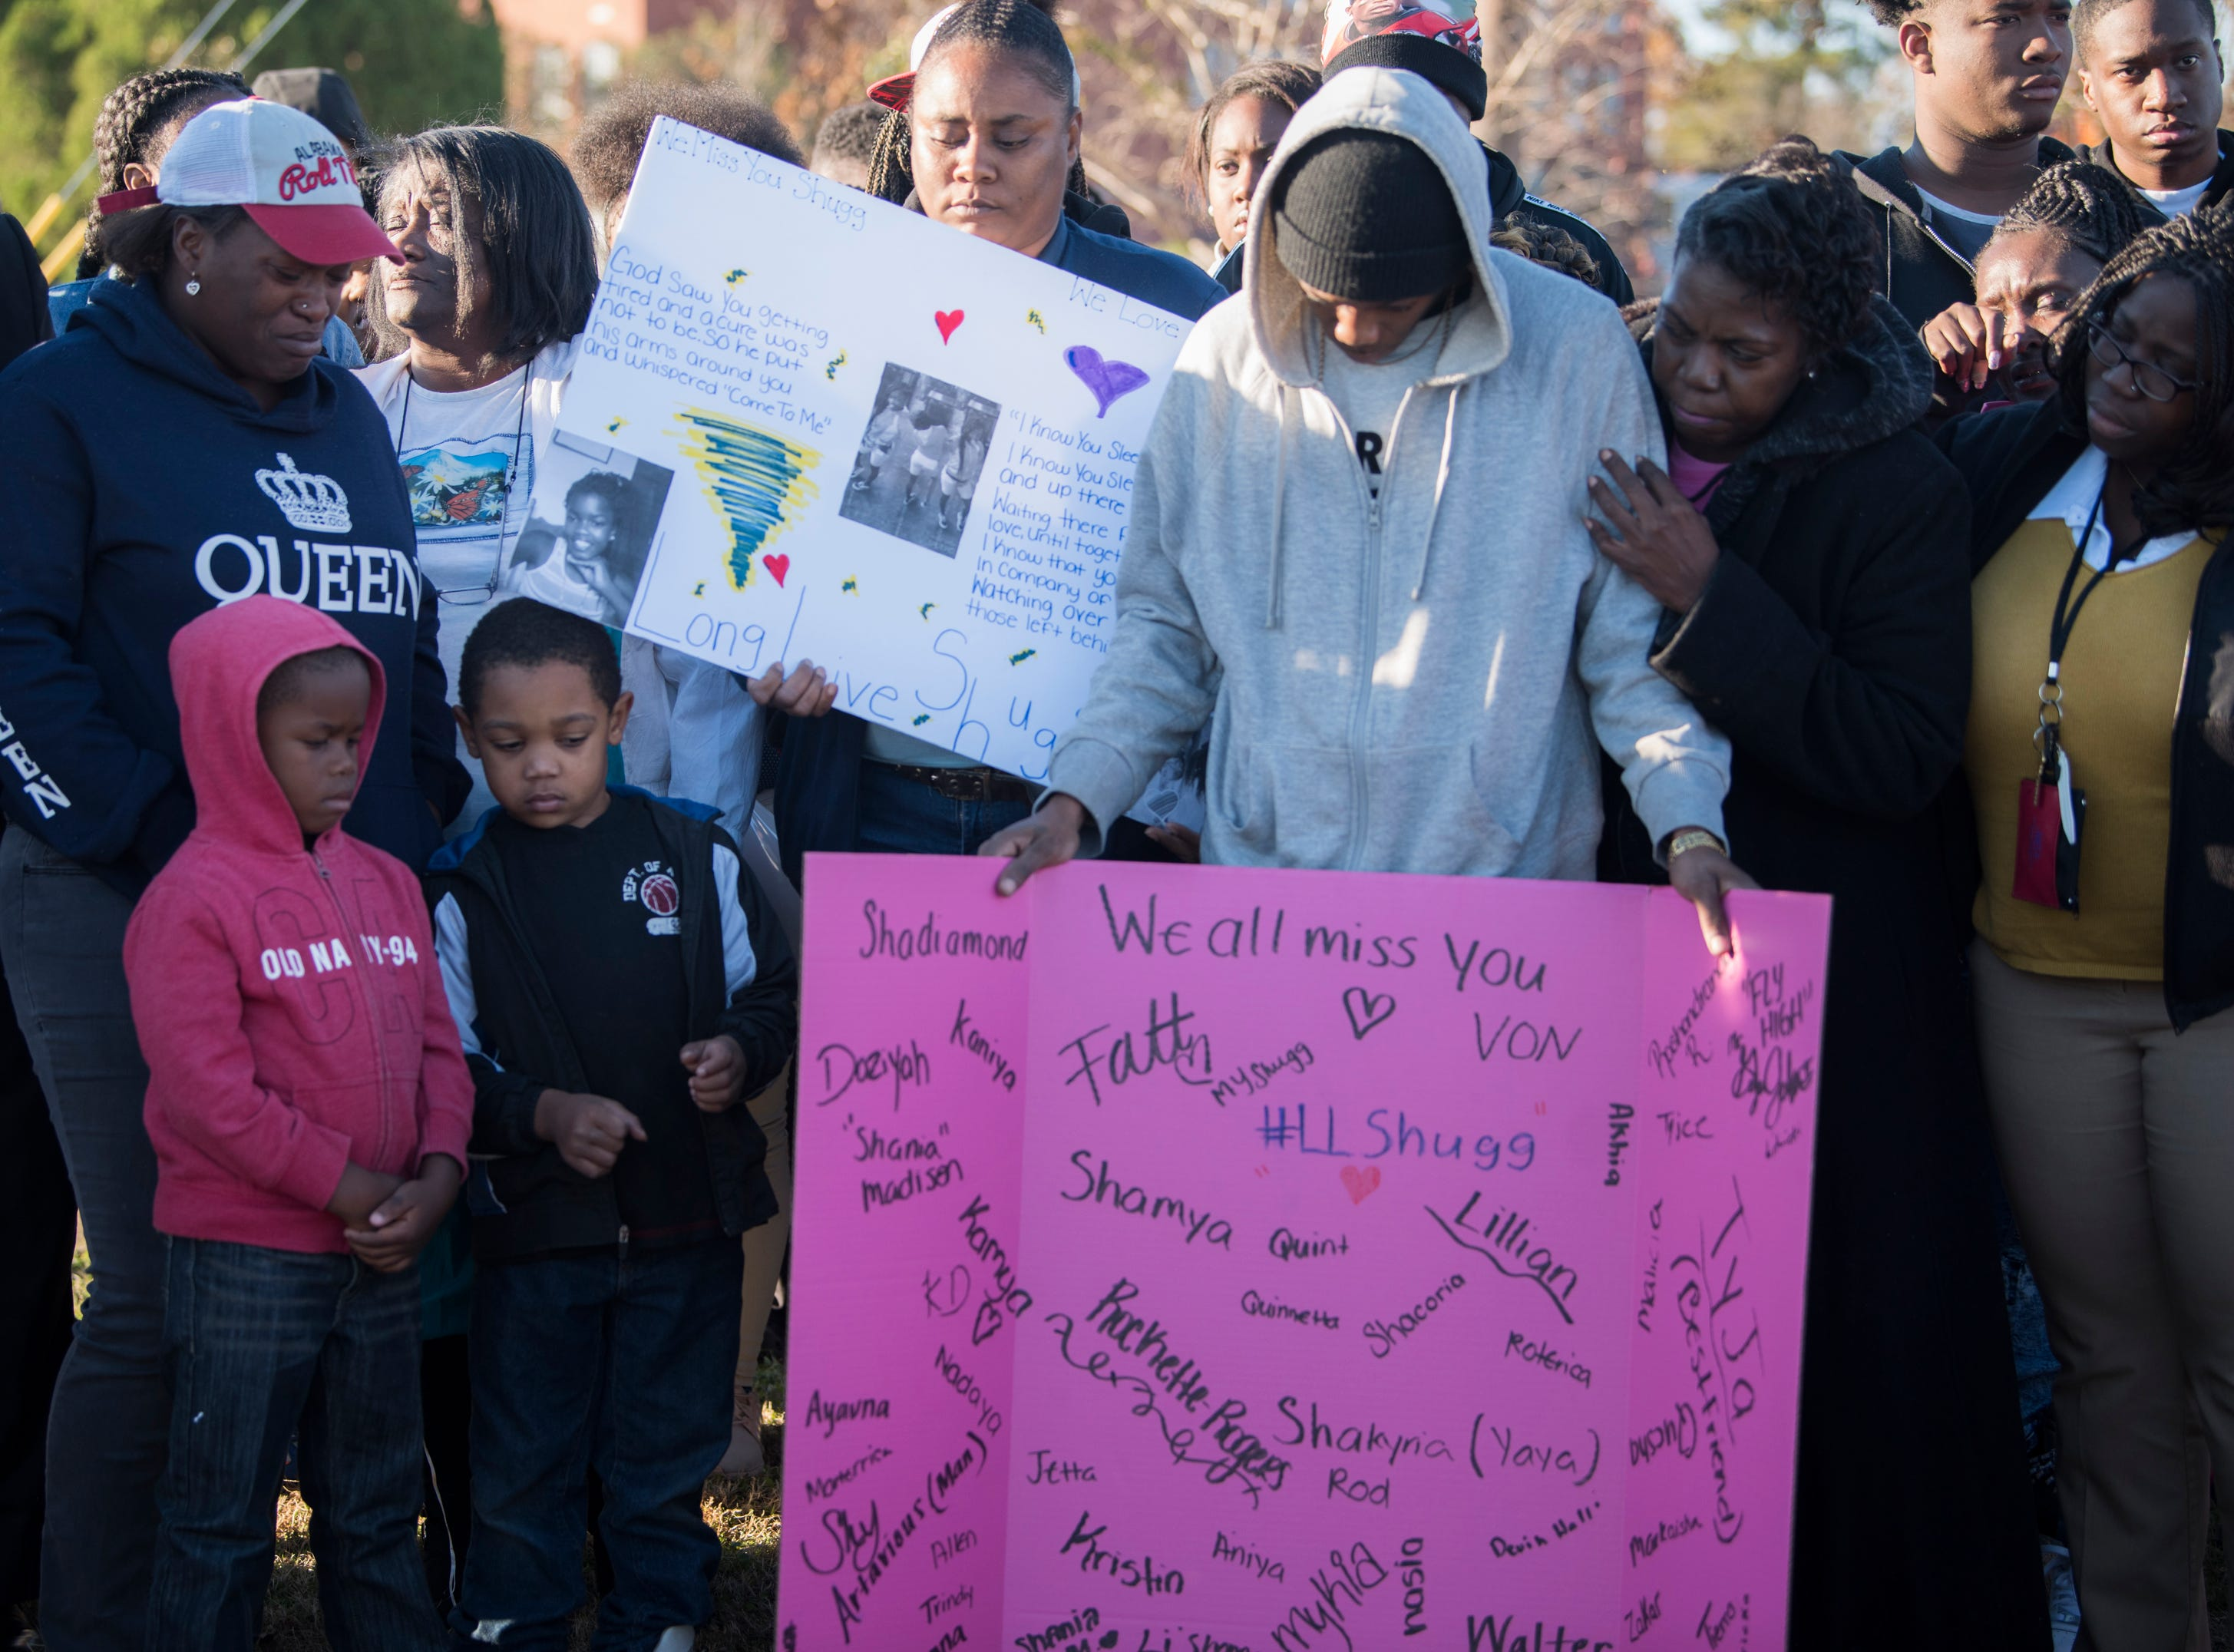 The family receives condolences from friends during a vigil for Keiauna Williams across from Carver High School in Montgomery, Ala., on Tuesday, Dec. 4, 2018. Williams was died after being hit by a car Saturday night.